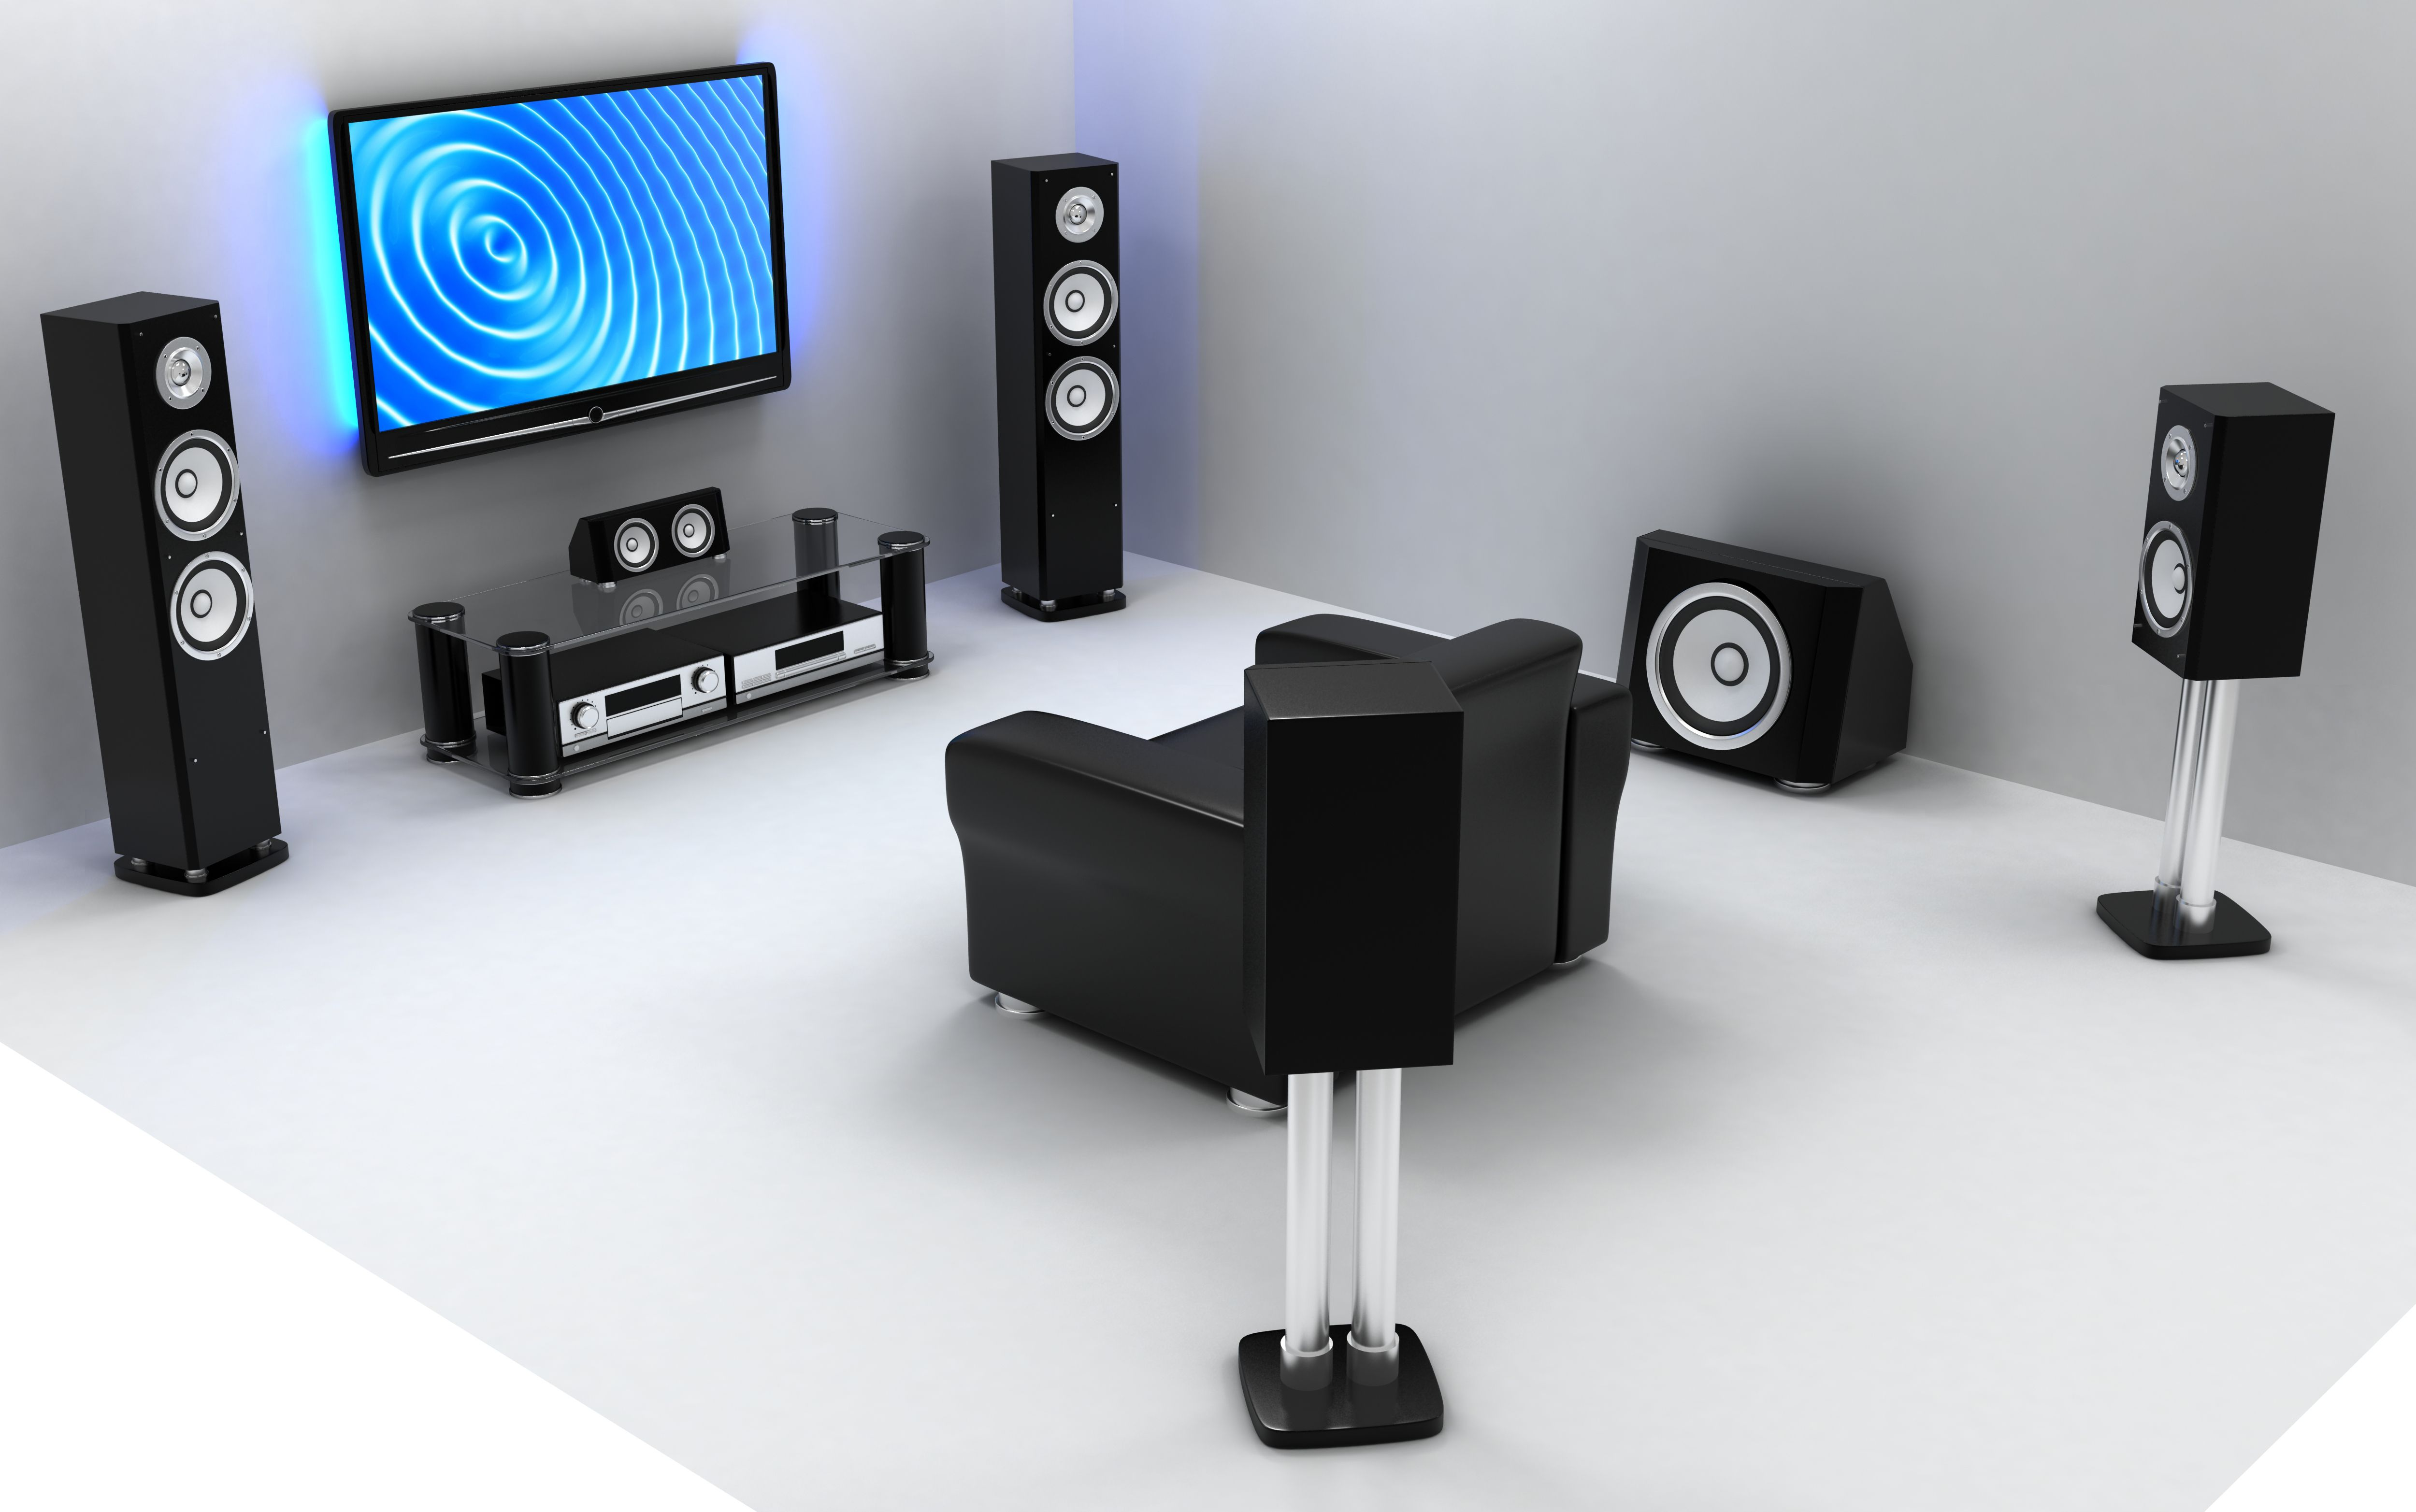 Tips And Tricks For Designing The Perfect Media Room Aic Blog Home Theater Installation Home Theater Setup Best Home Theater System